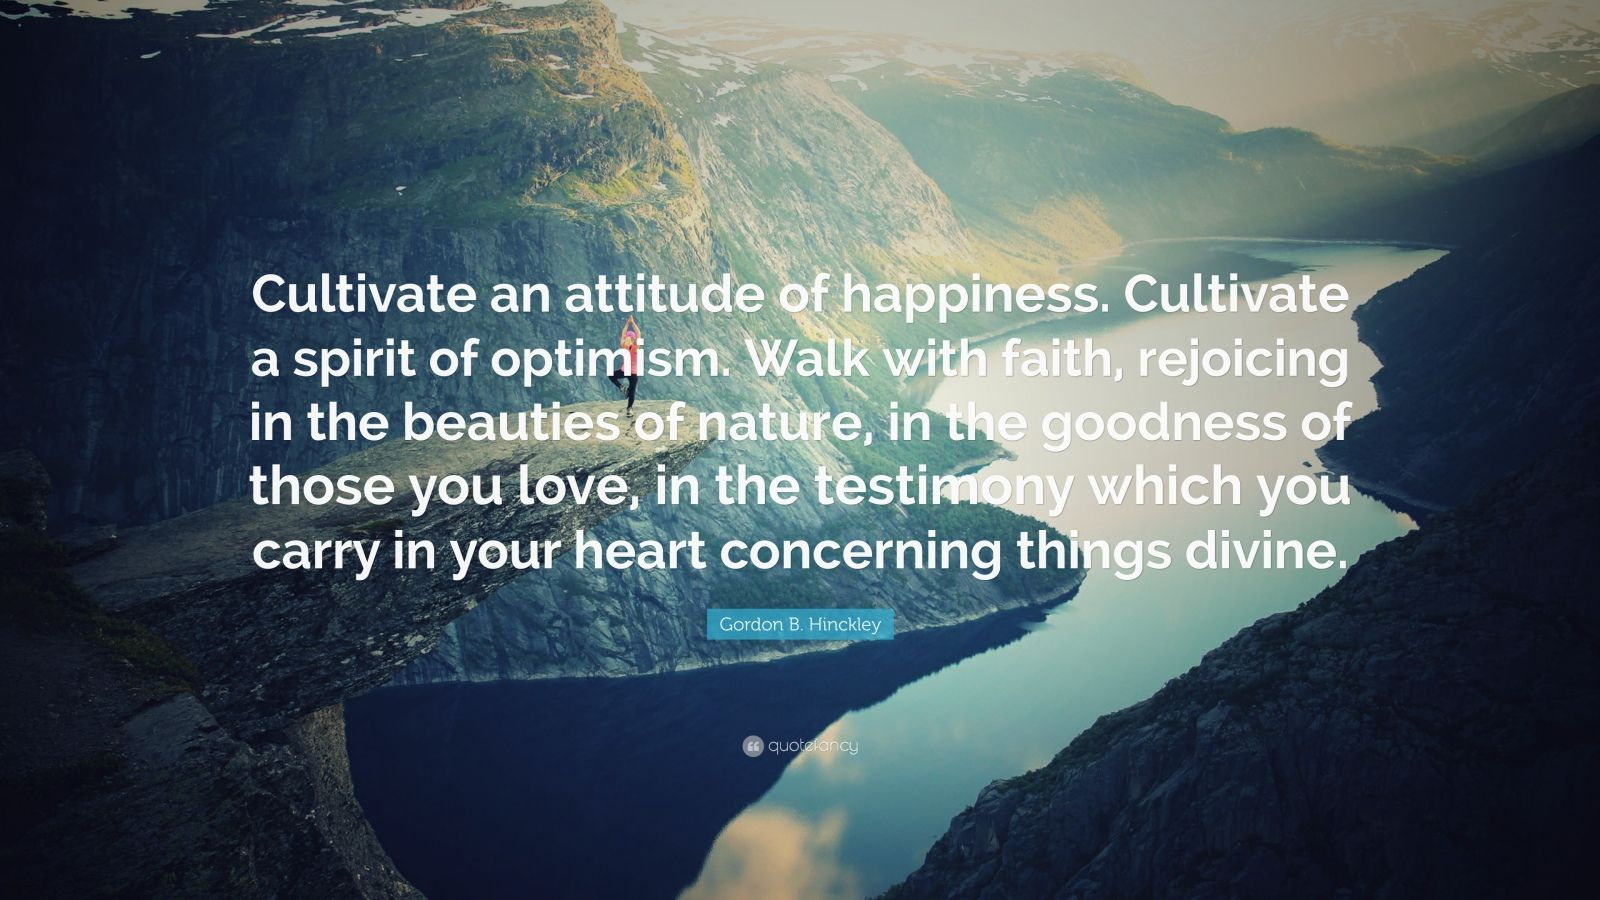 """Gordon B. Hinckley Quote: """"Cultivate an attitude of happiness. Cultivate a spirit of optimism. Walk with faith, rejoicing in the beauties of nature, in the goodness of those you love, in the testimony which you carry in your heart concerning things divine."""""""